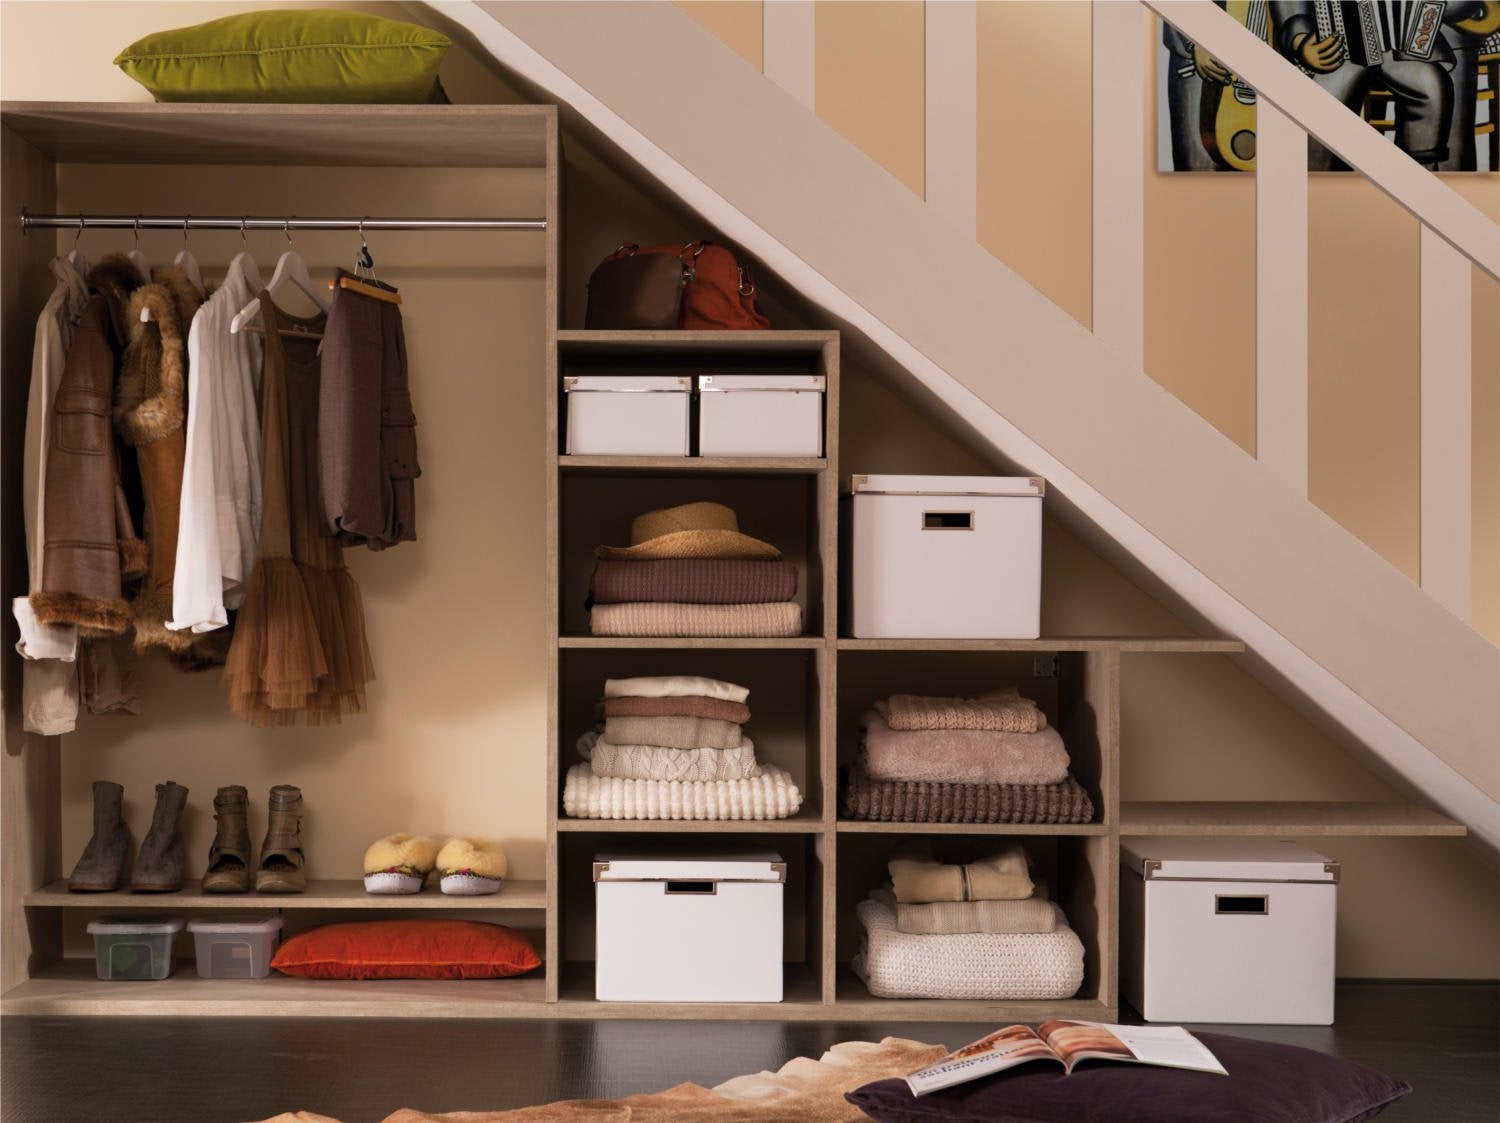 Comment Creer Un Dressing Sous Un Escalier Leroy Merlin